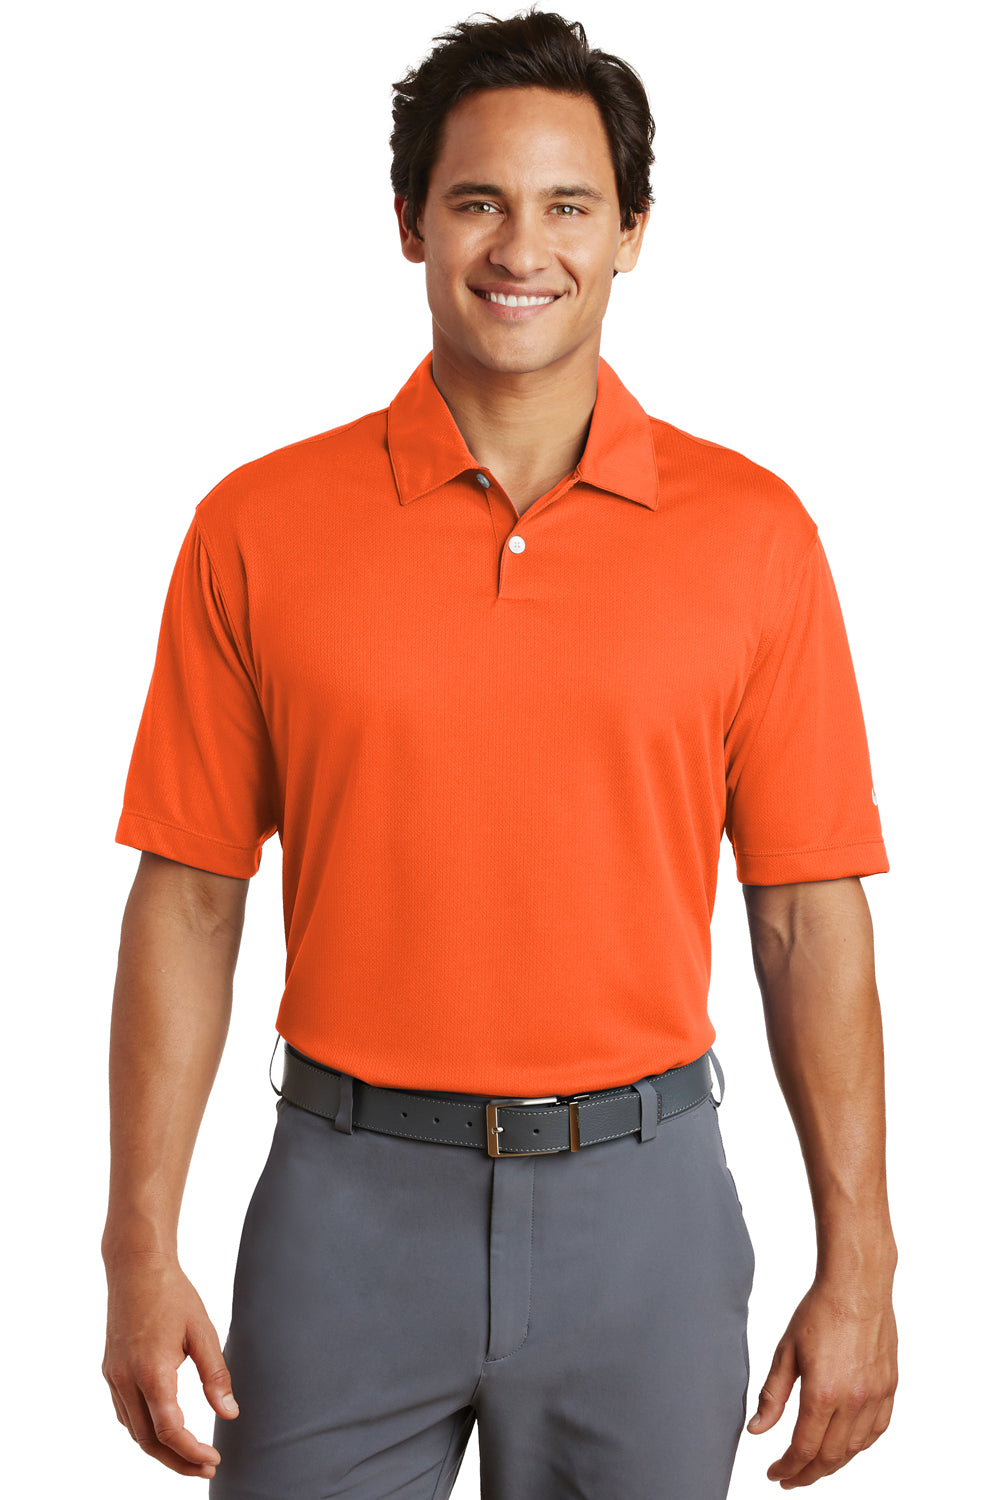 Nike 373749 Mens Dri-Fit Moisture Wicking Short Sleeve Polo Shirt Orange Front